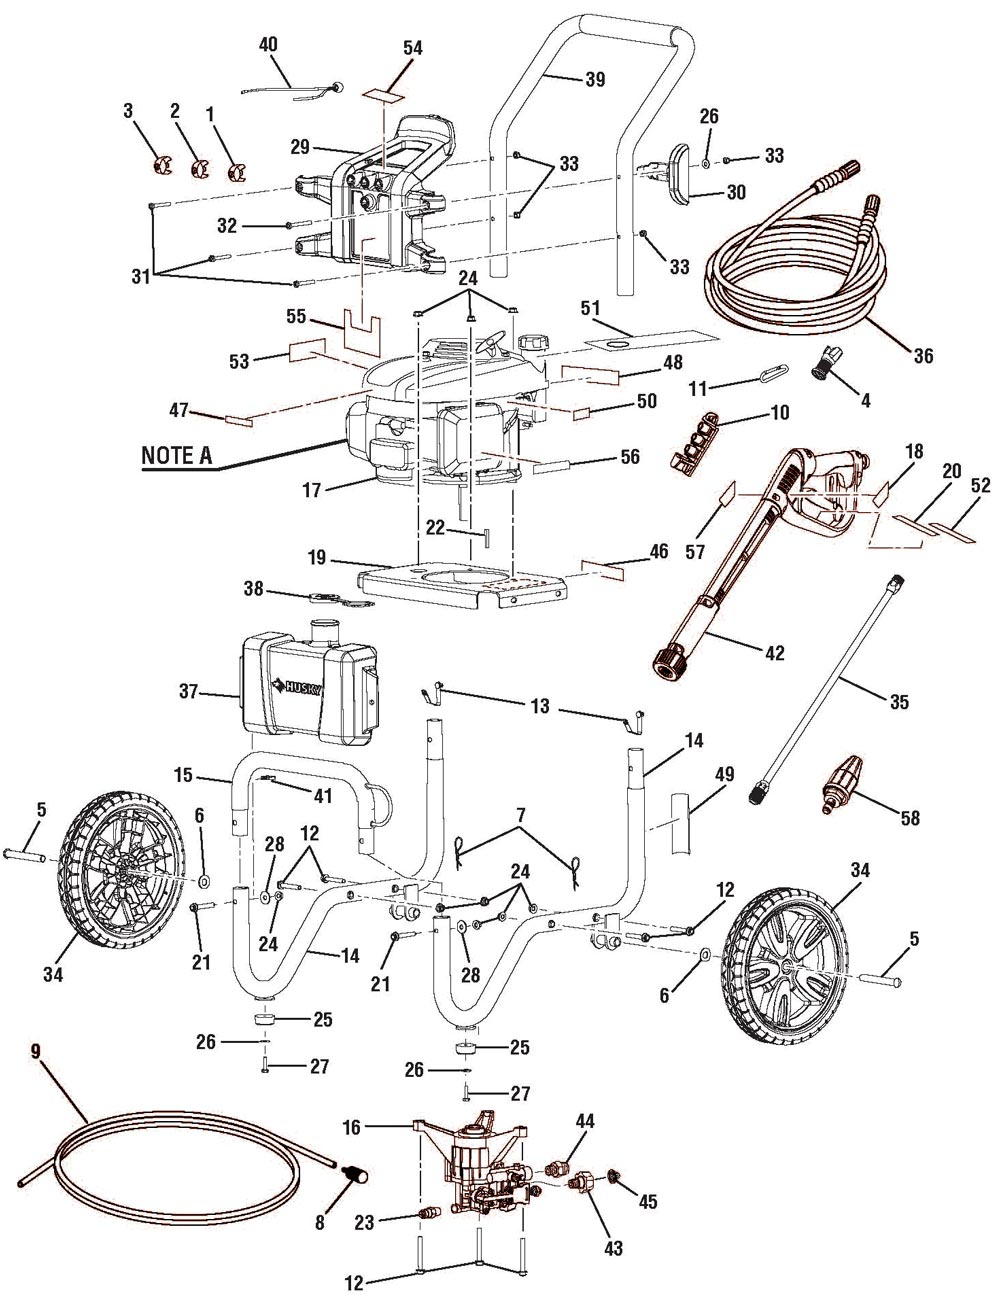 HU80432_parts husky hu80432, hu80432a husky 5000 watt generator wiring diagram at mr168.co